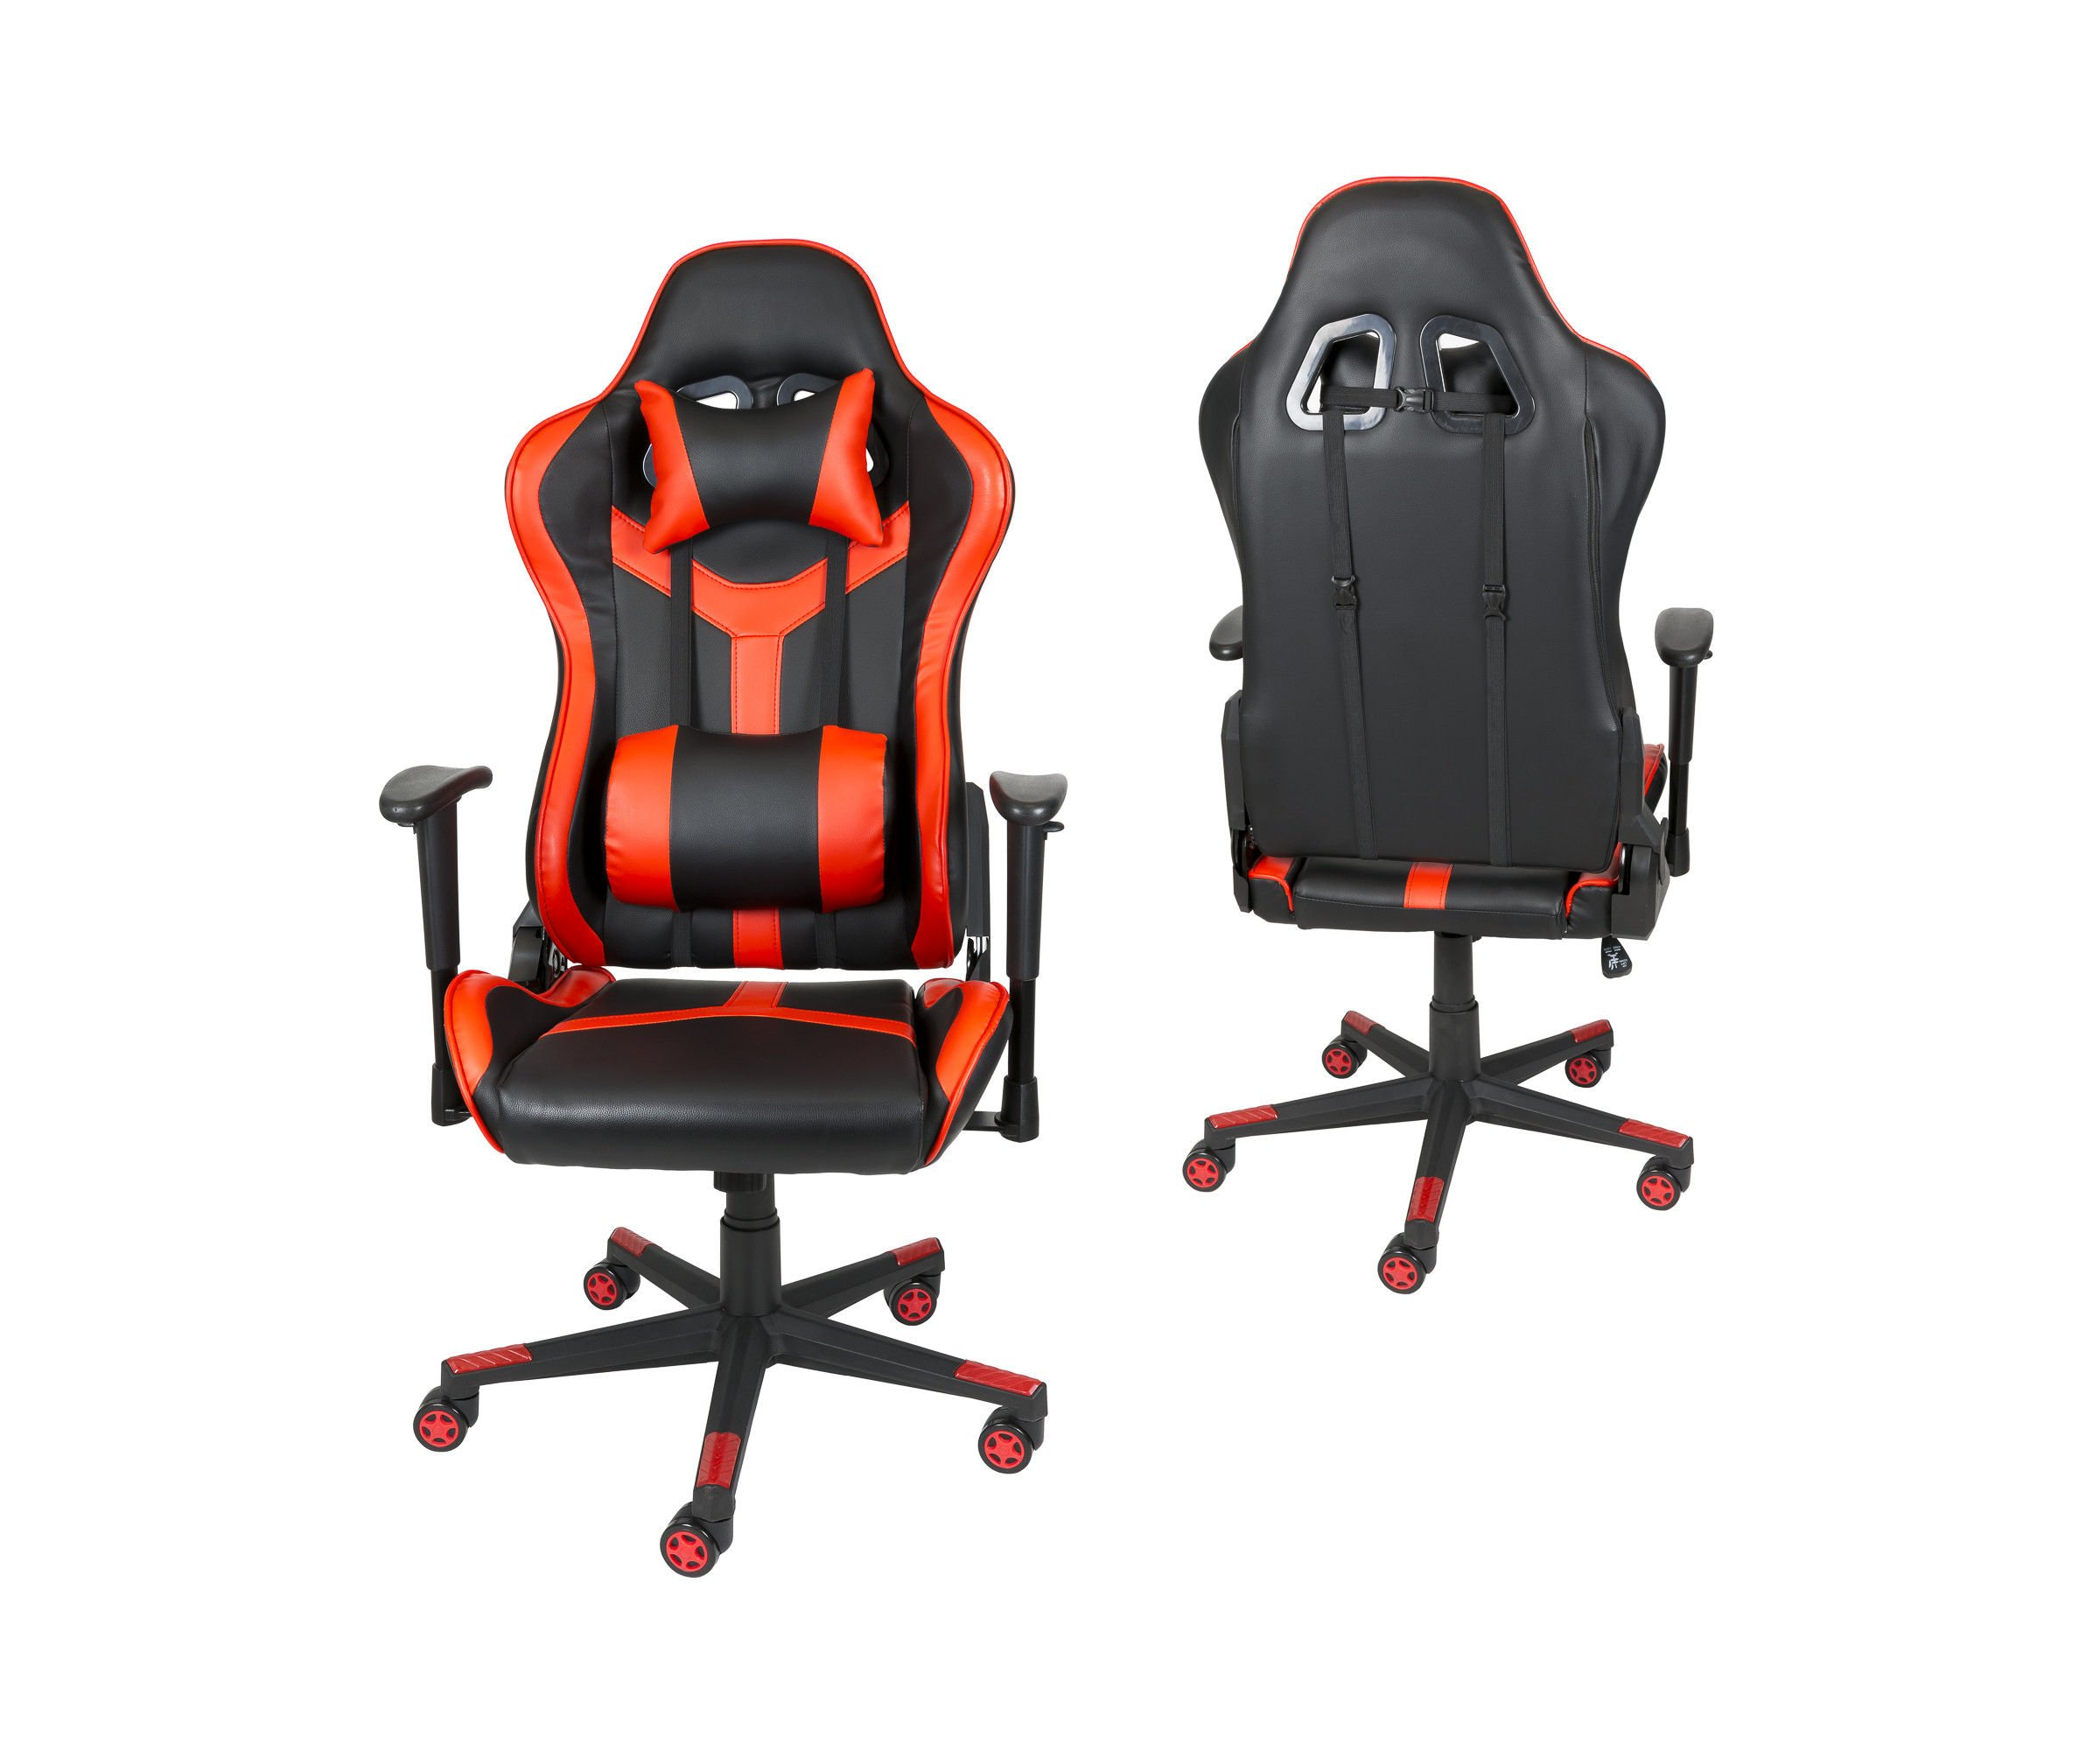 sessel rot, gaming sessel sk design rot skg002 c scorpion rot || schwarz, Design ideen